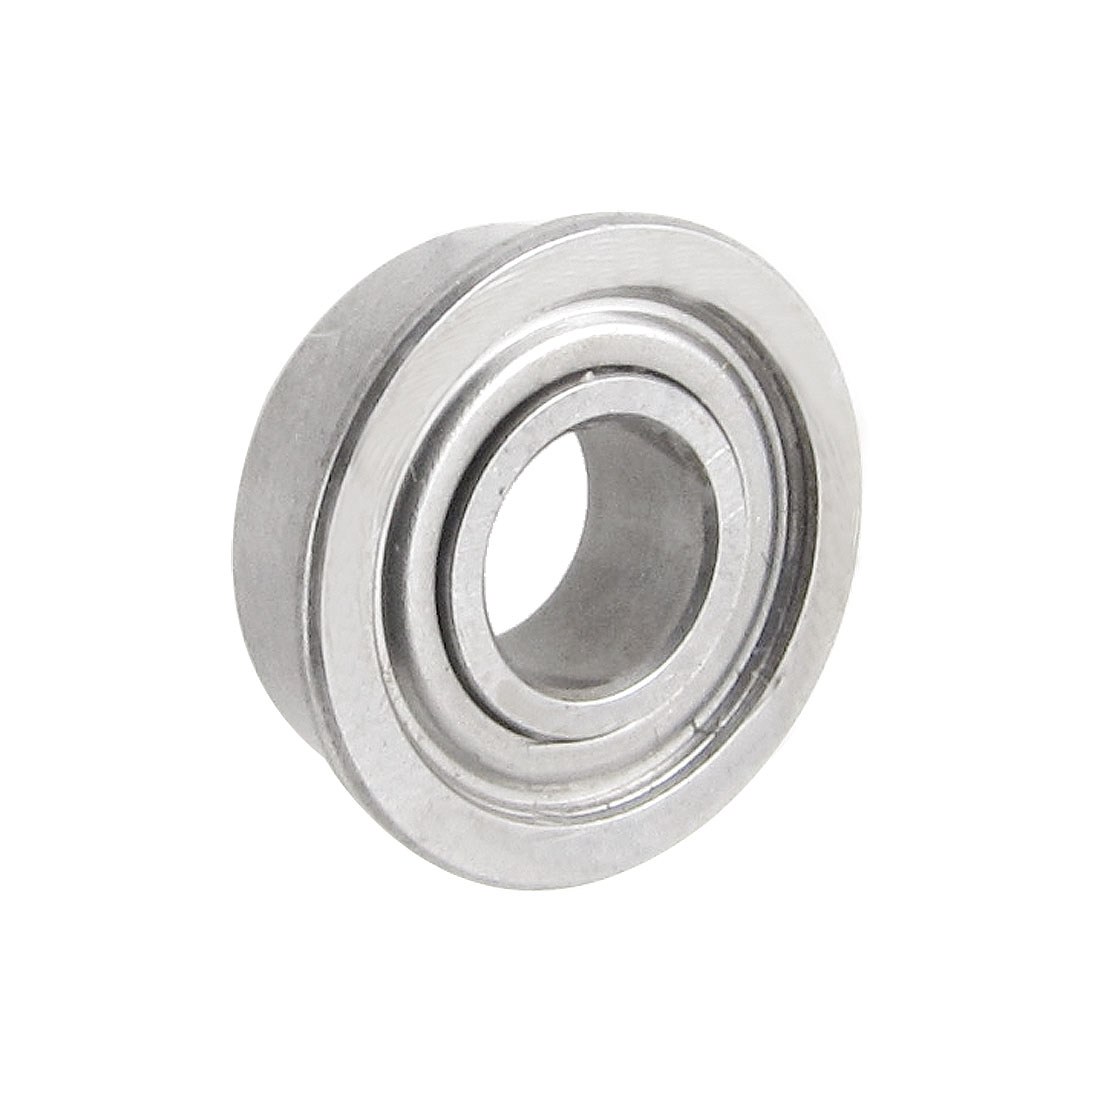 11mm x 5mm x 4mm Radial Shielded Deep Groove Flanged Ball Bearing Silver Tone